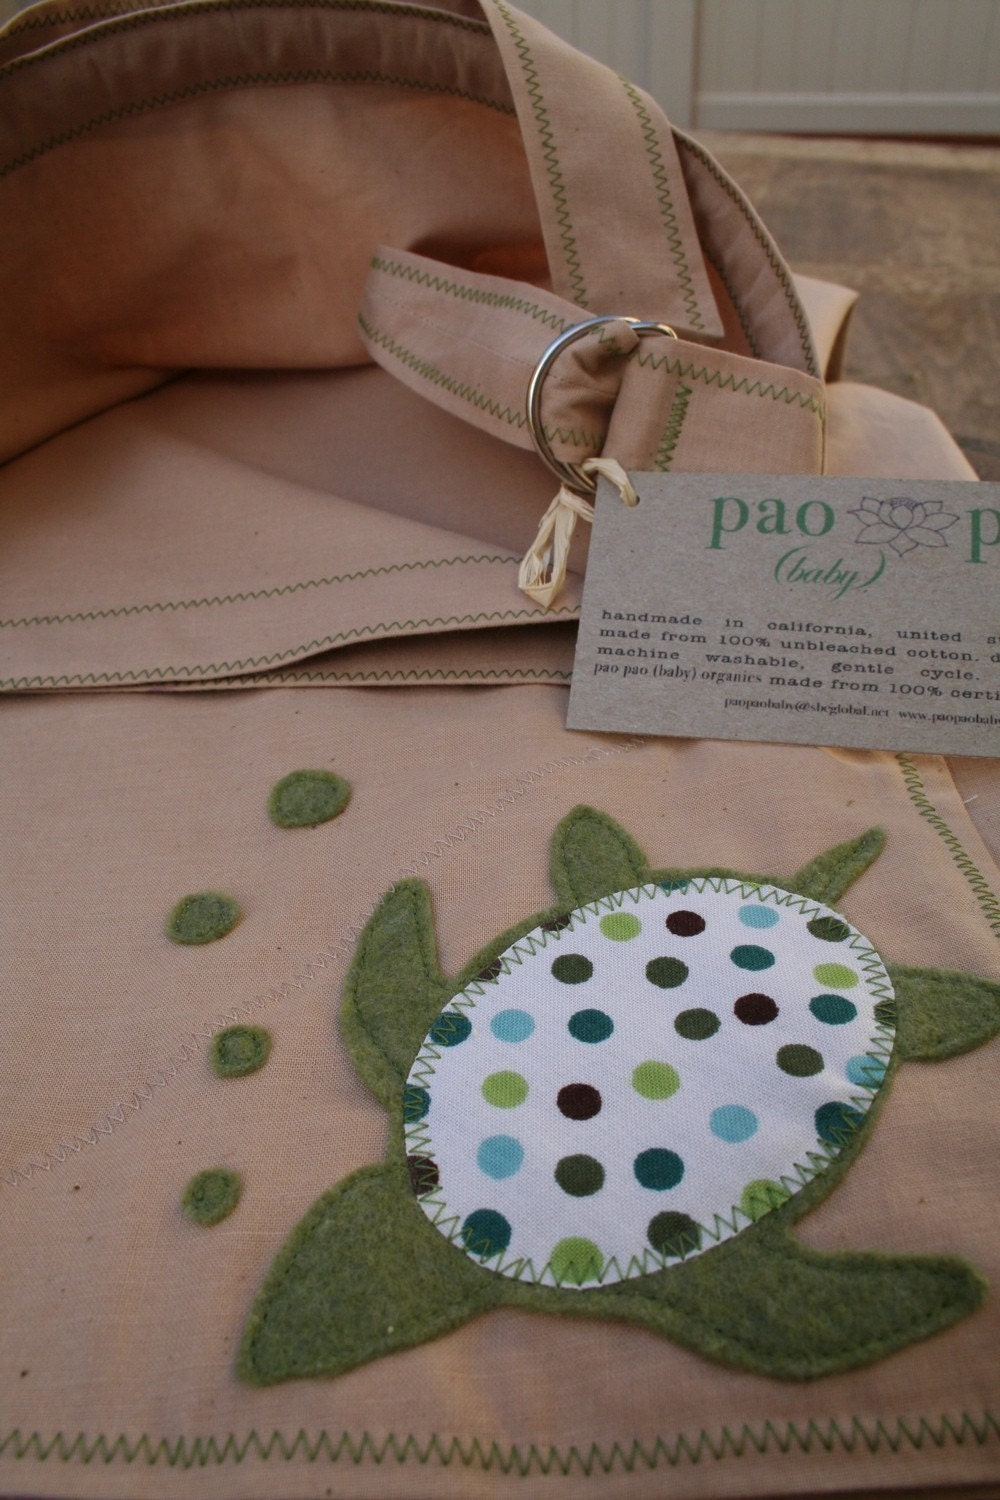 tea stained natural cotton nursing cover (by pao pao baby) sea turtle